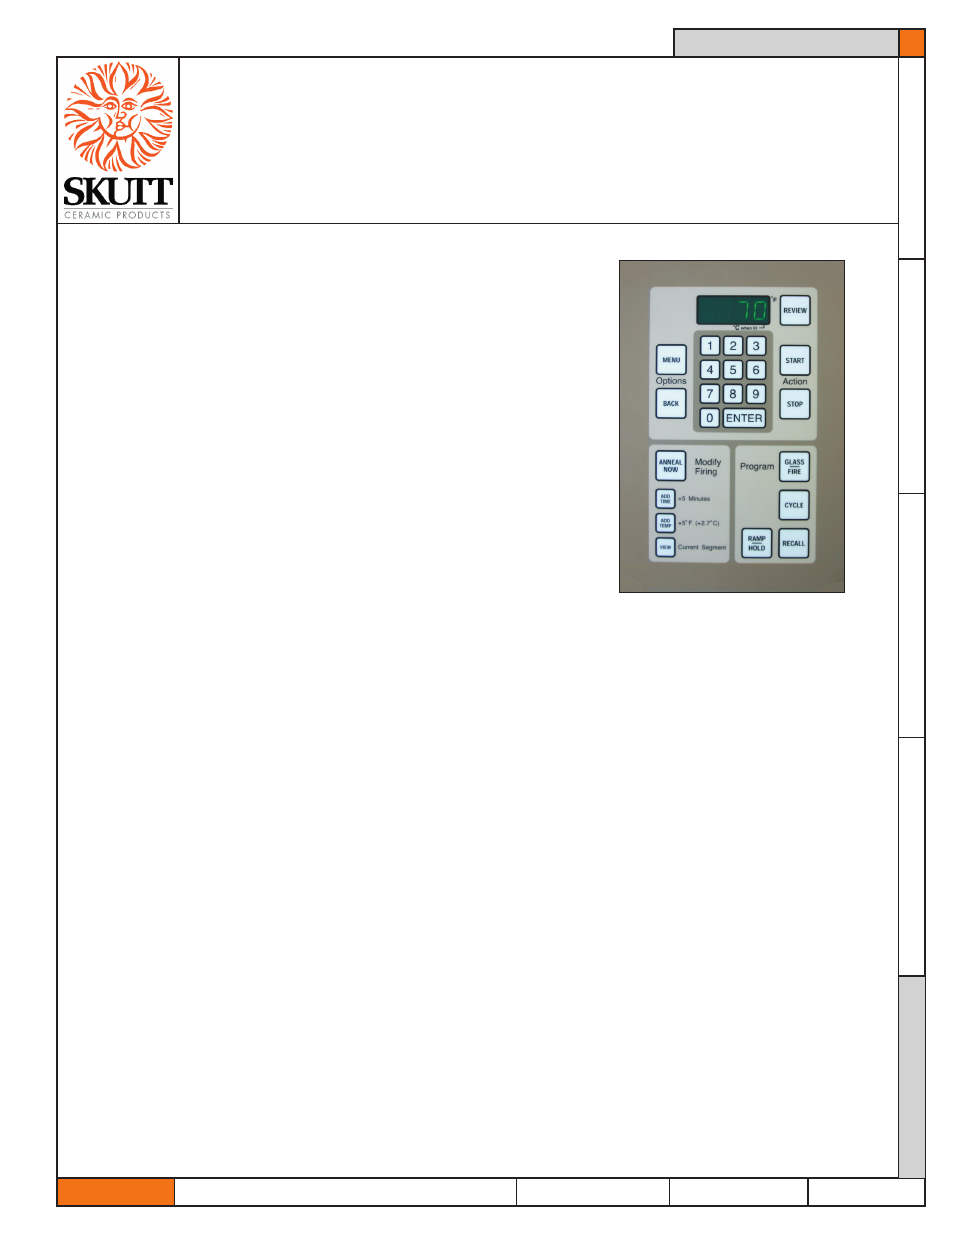 Skutt Glassmaster 700 Board User Manual 17 Pages